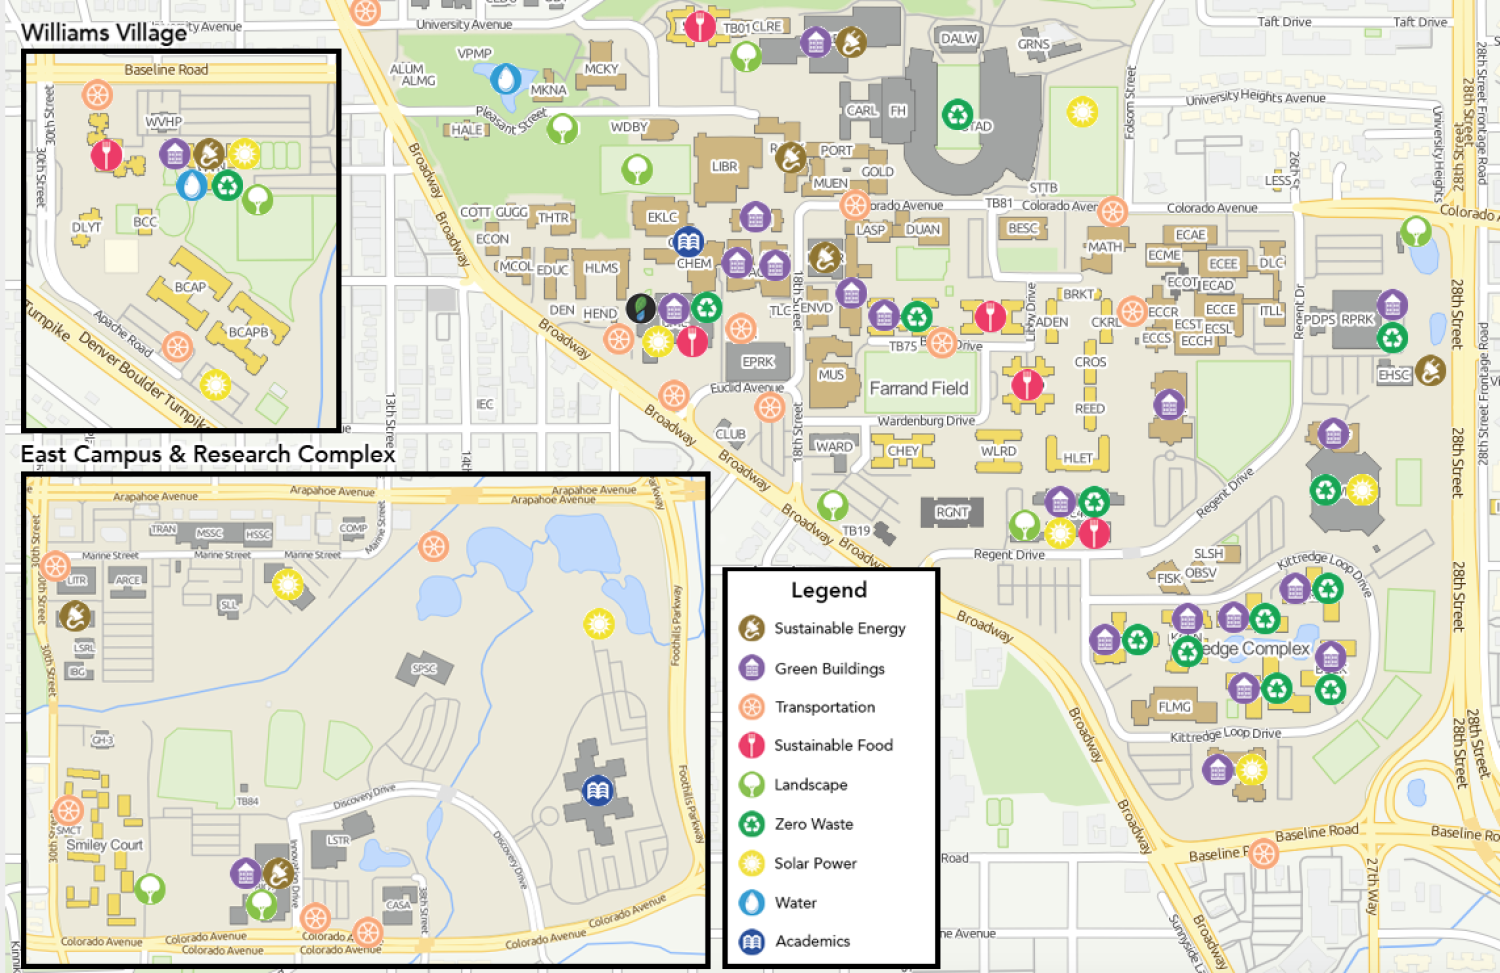 Campus map showing all sustainable resources available.